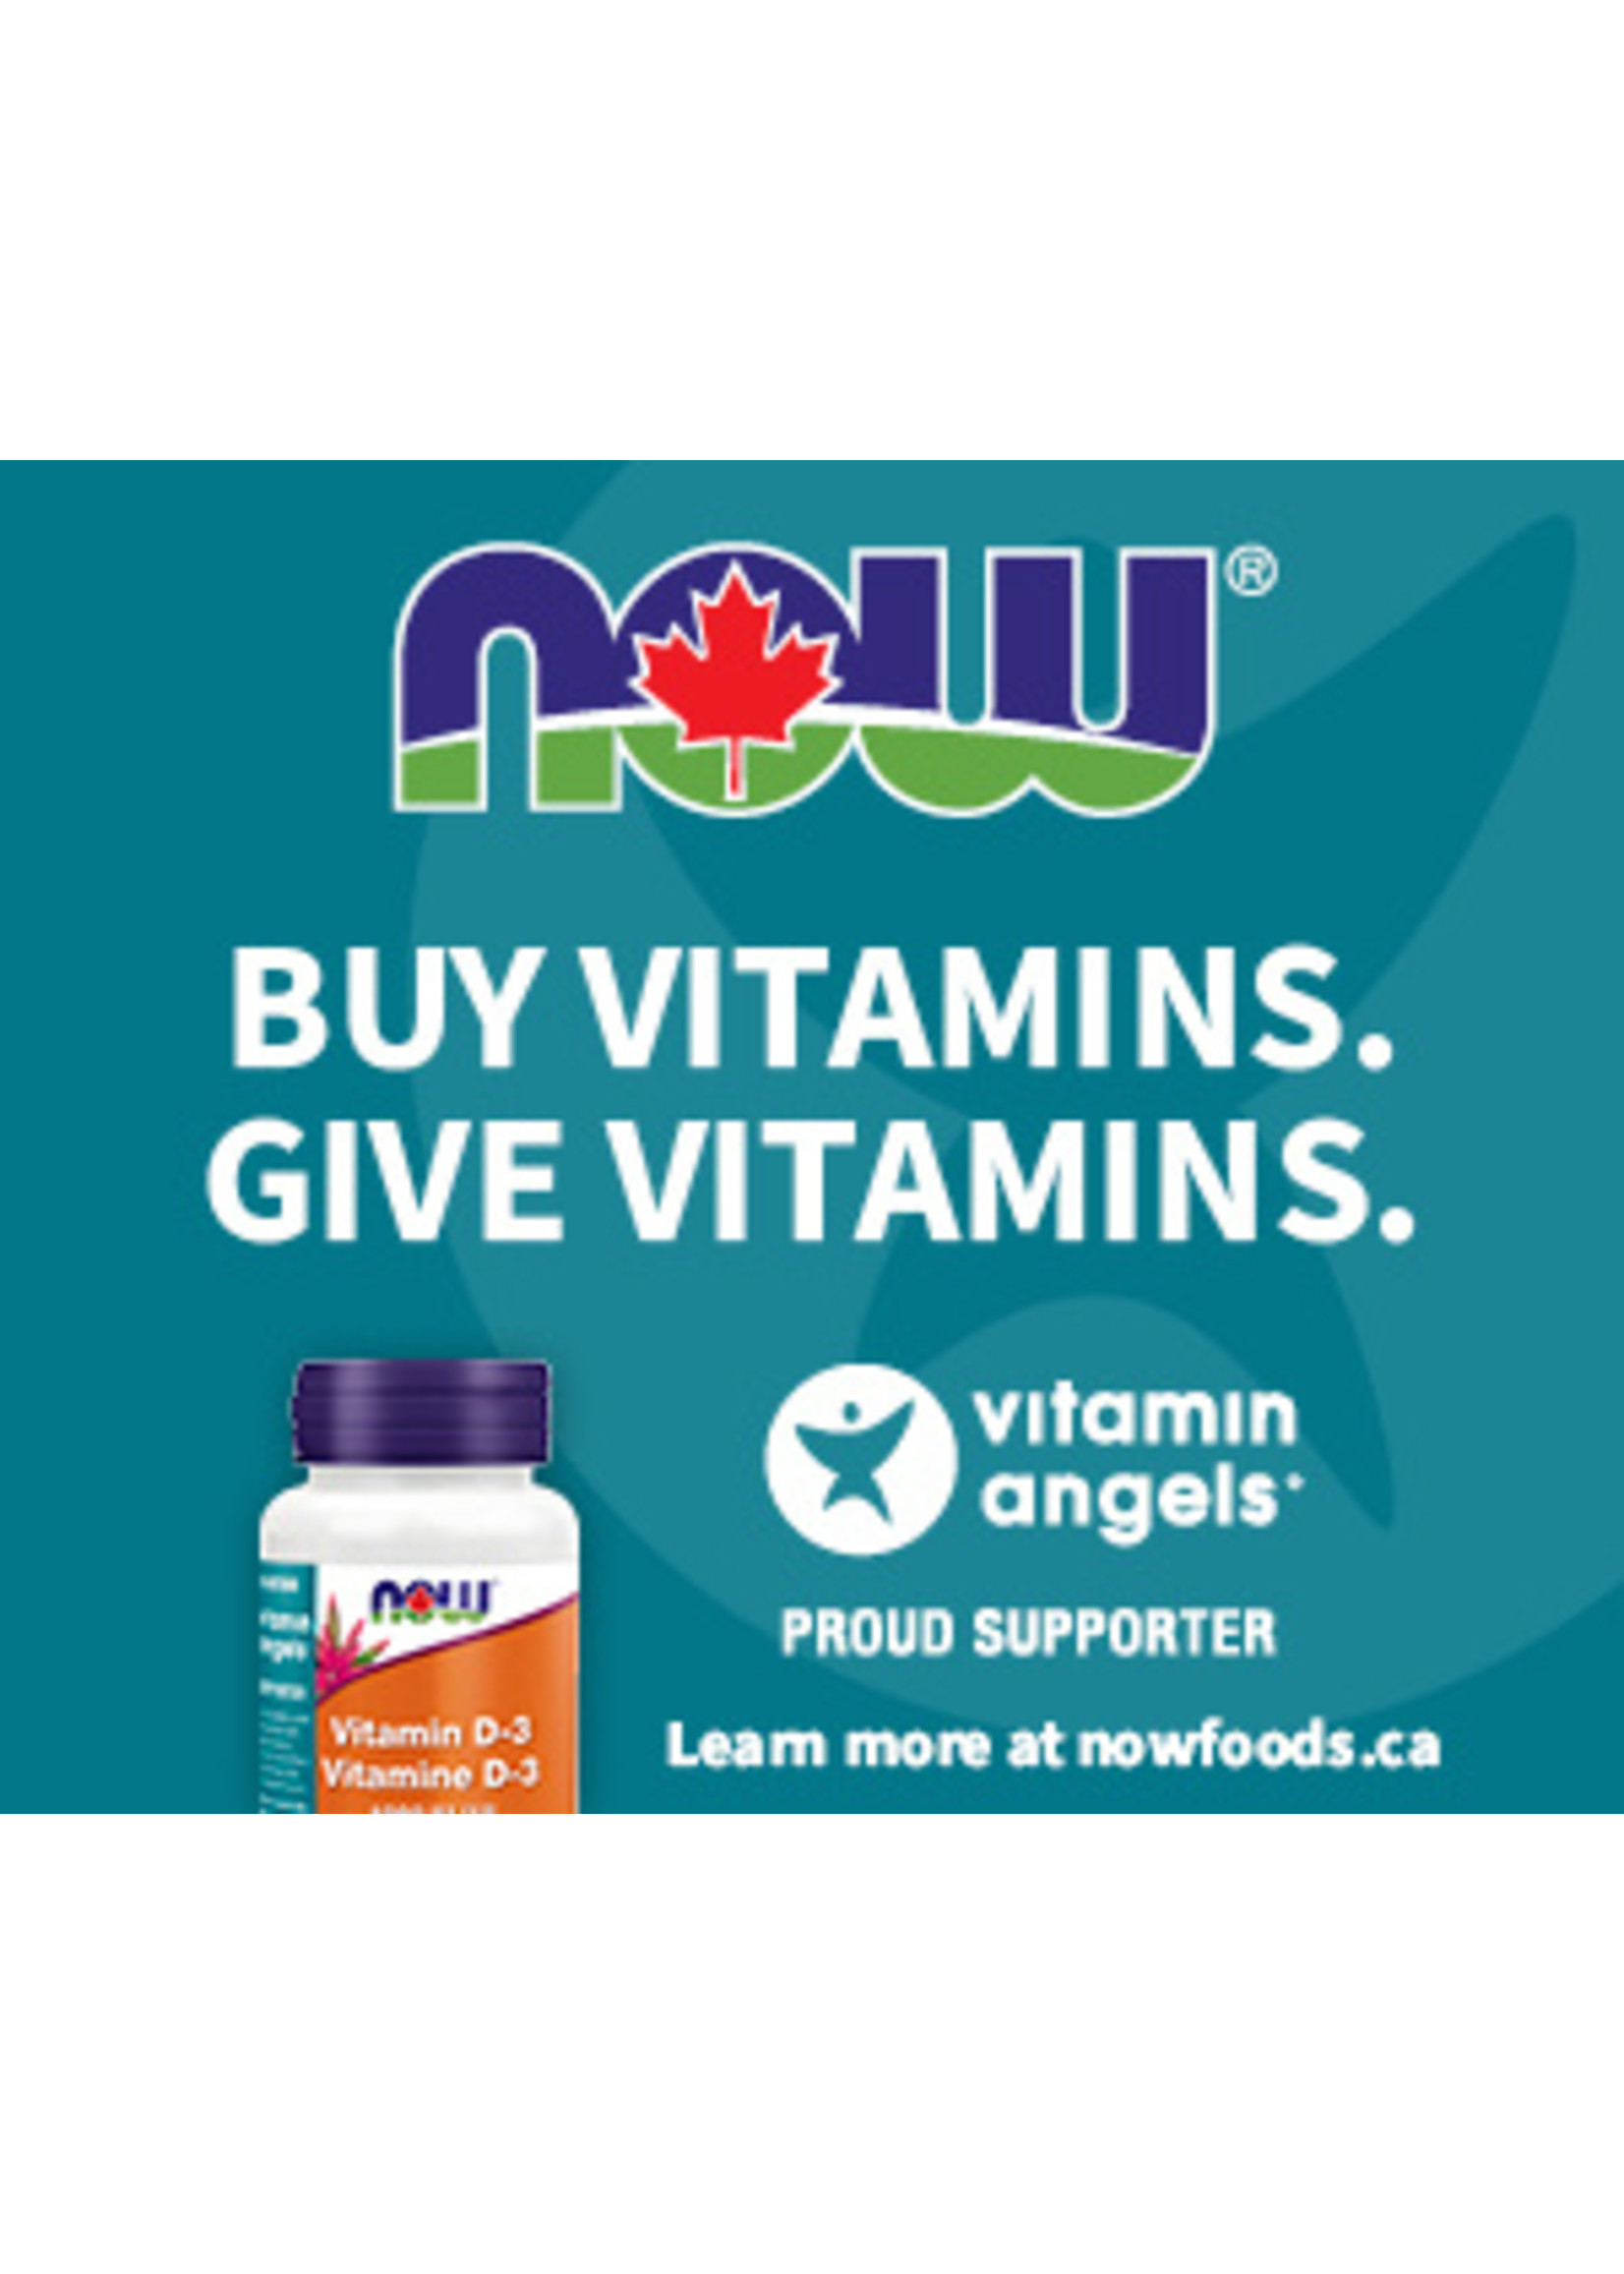 Now Now Vitamin D3 1000IU 180caps - Thank you for Supporting the Vitamin Angels Charity!